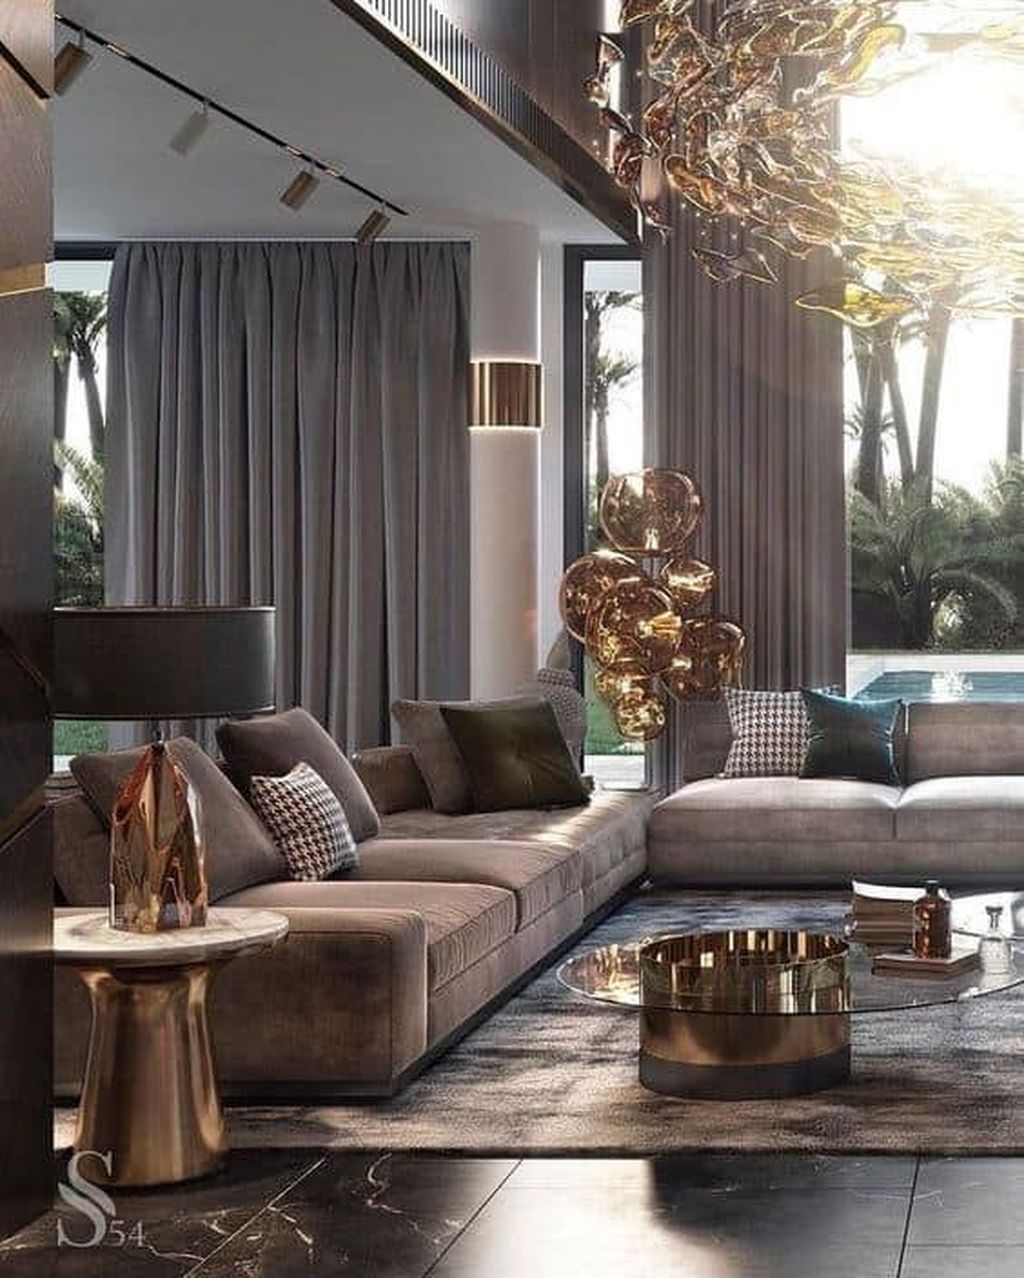 35 Admirable Modern Interior Design Ideas You Never Seen Before Luxury Living Room Luxury Living Room Design Interior Design Living Room